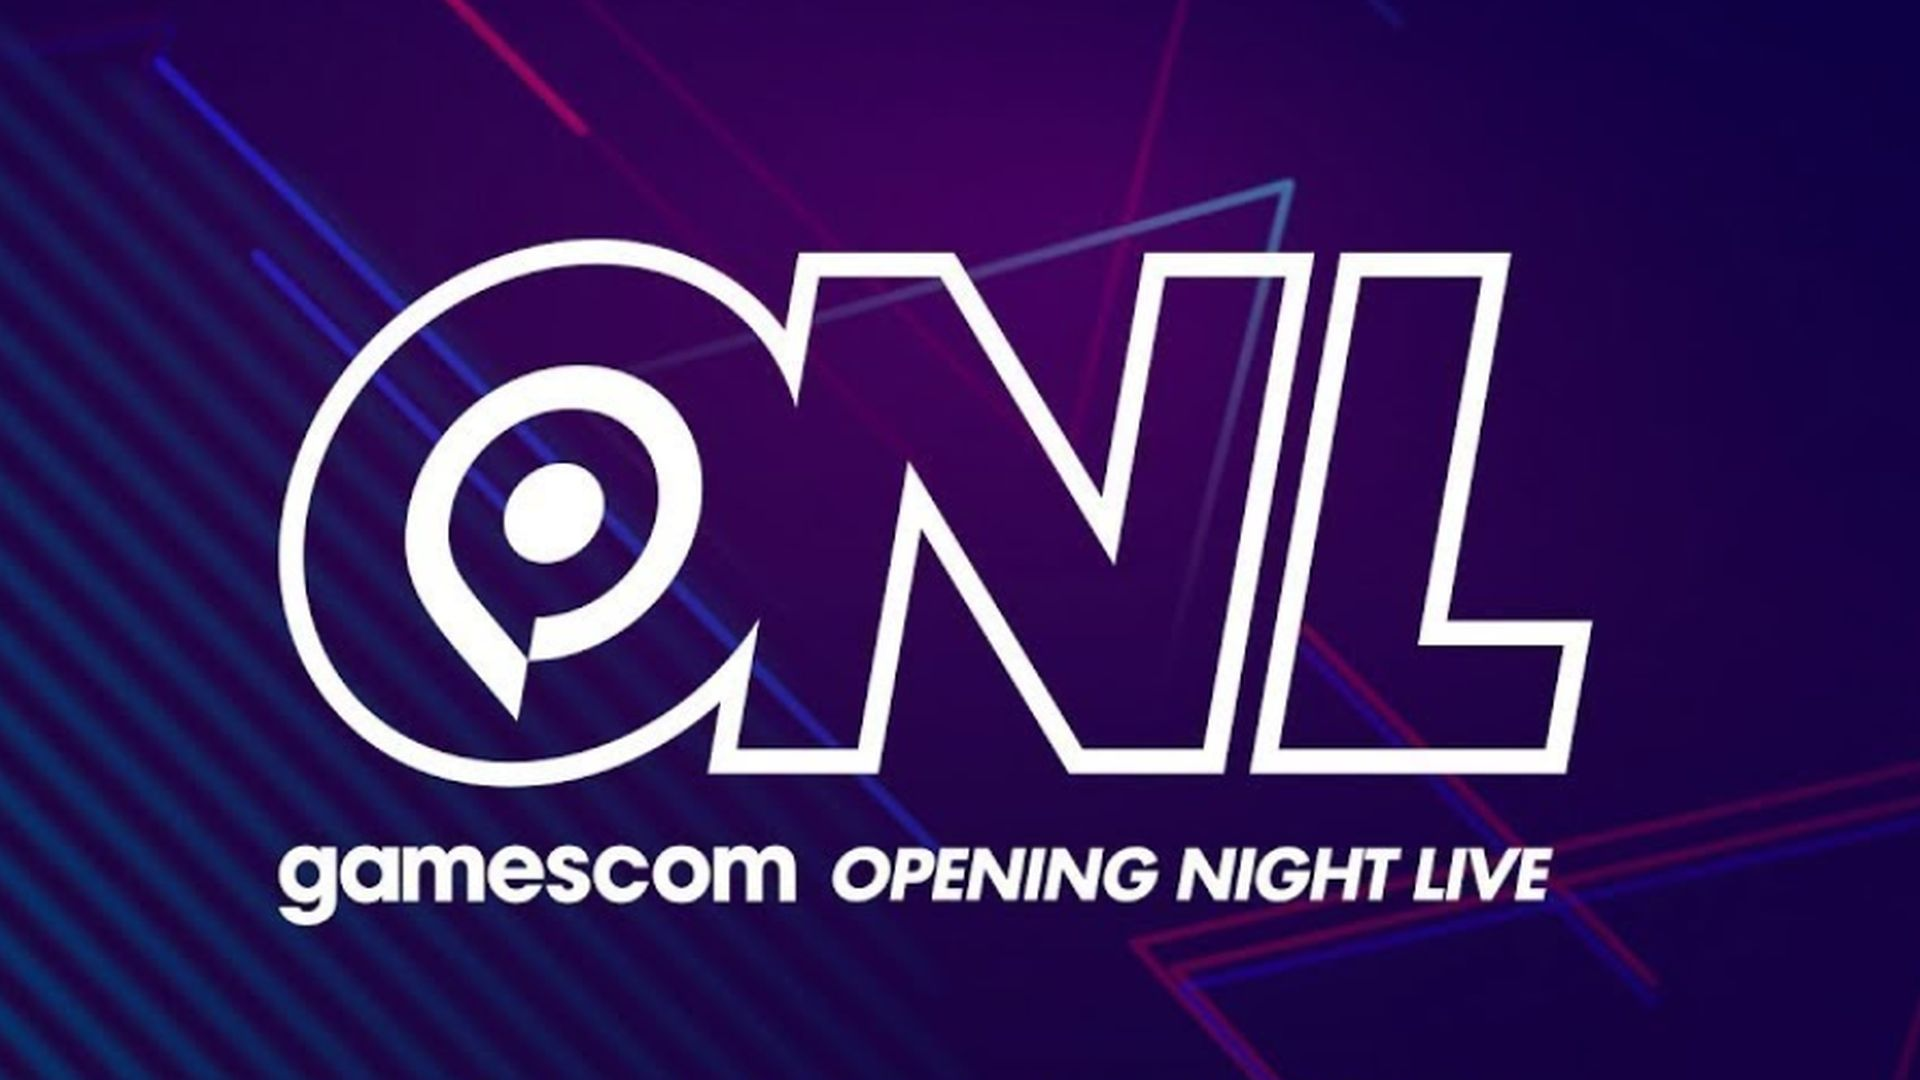 Geoff Keighley's Opening Night Live returns for Gamescom 2021